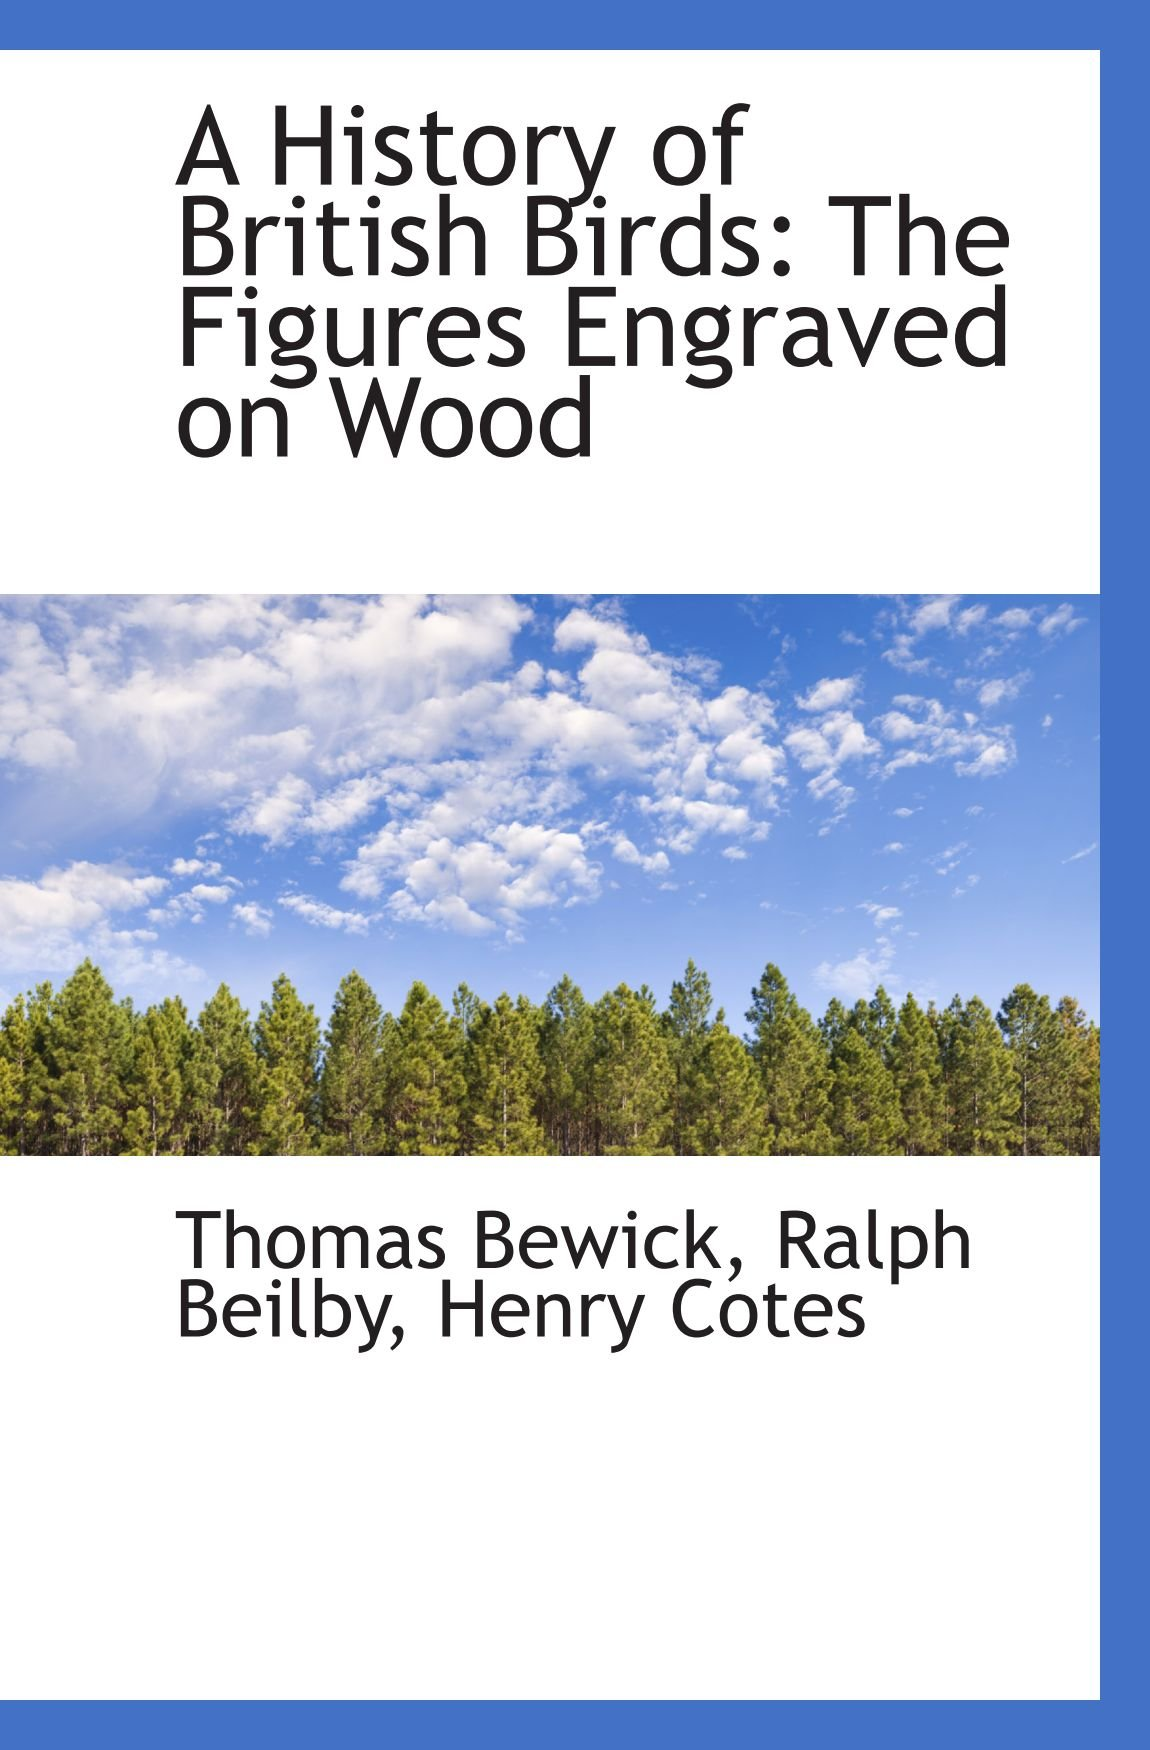 A History of British Birds: The Figures Engraved on Wood pdf